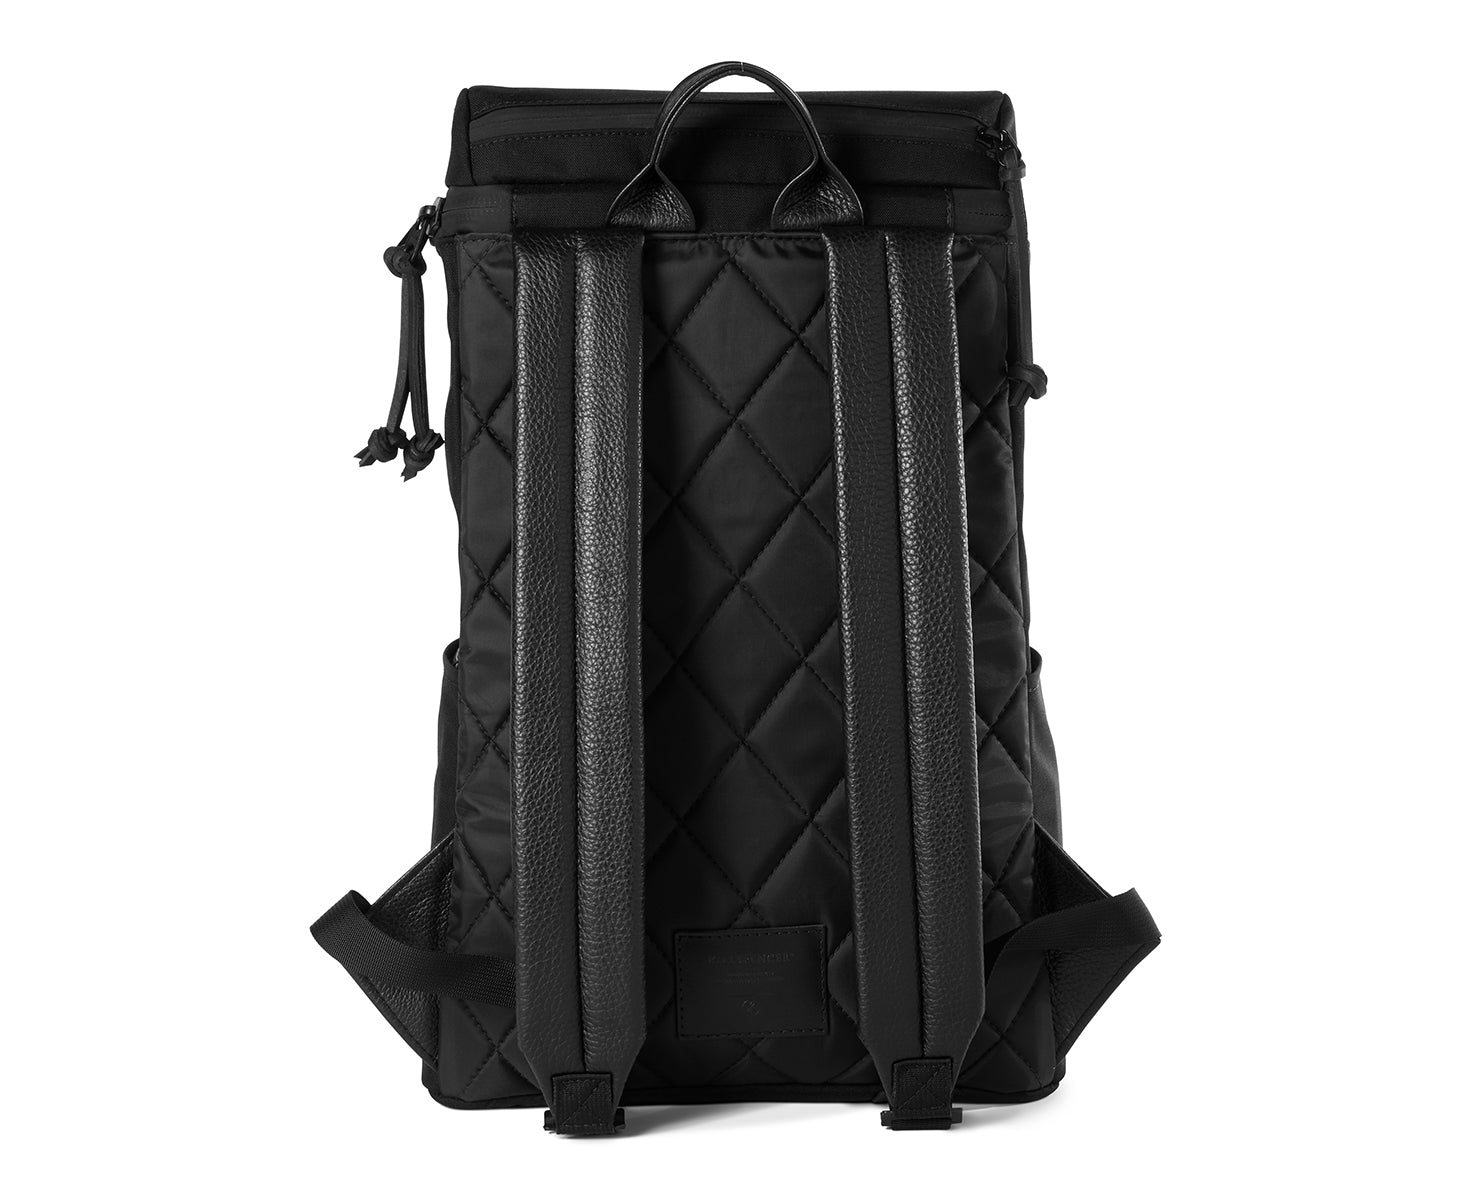 R-22 RUCKSACK | KILLSPENCER® - Black Cordura